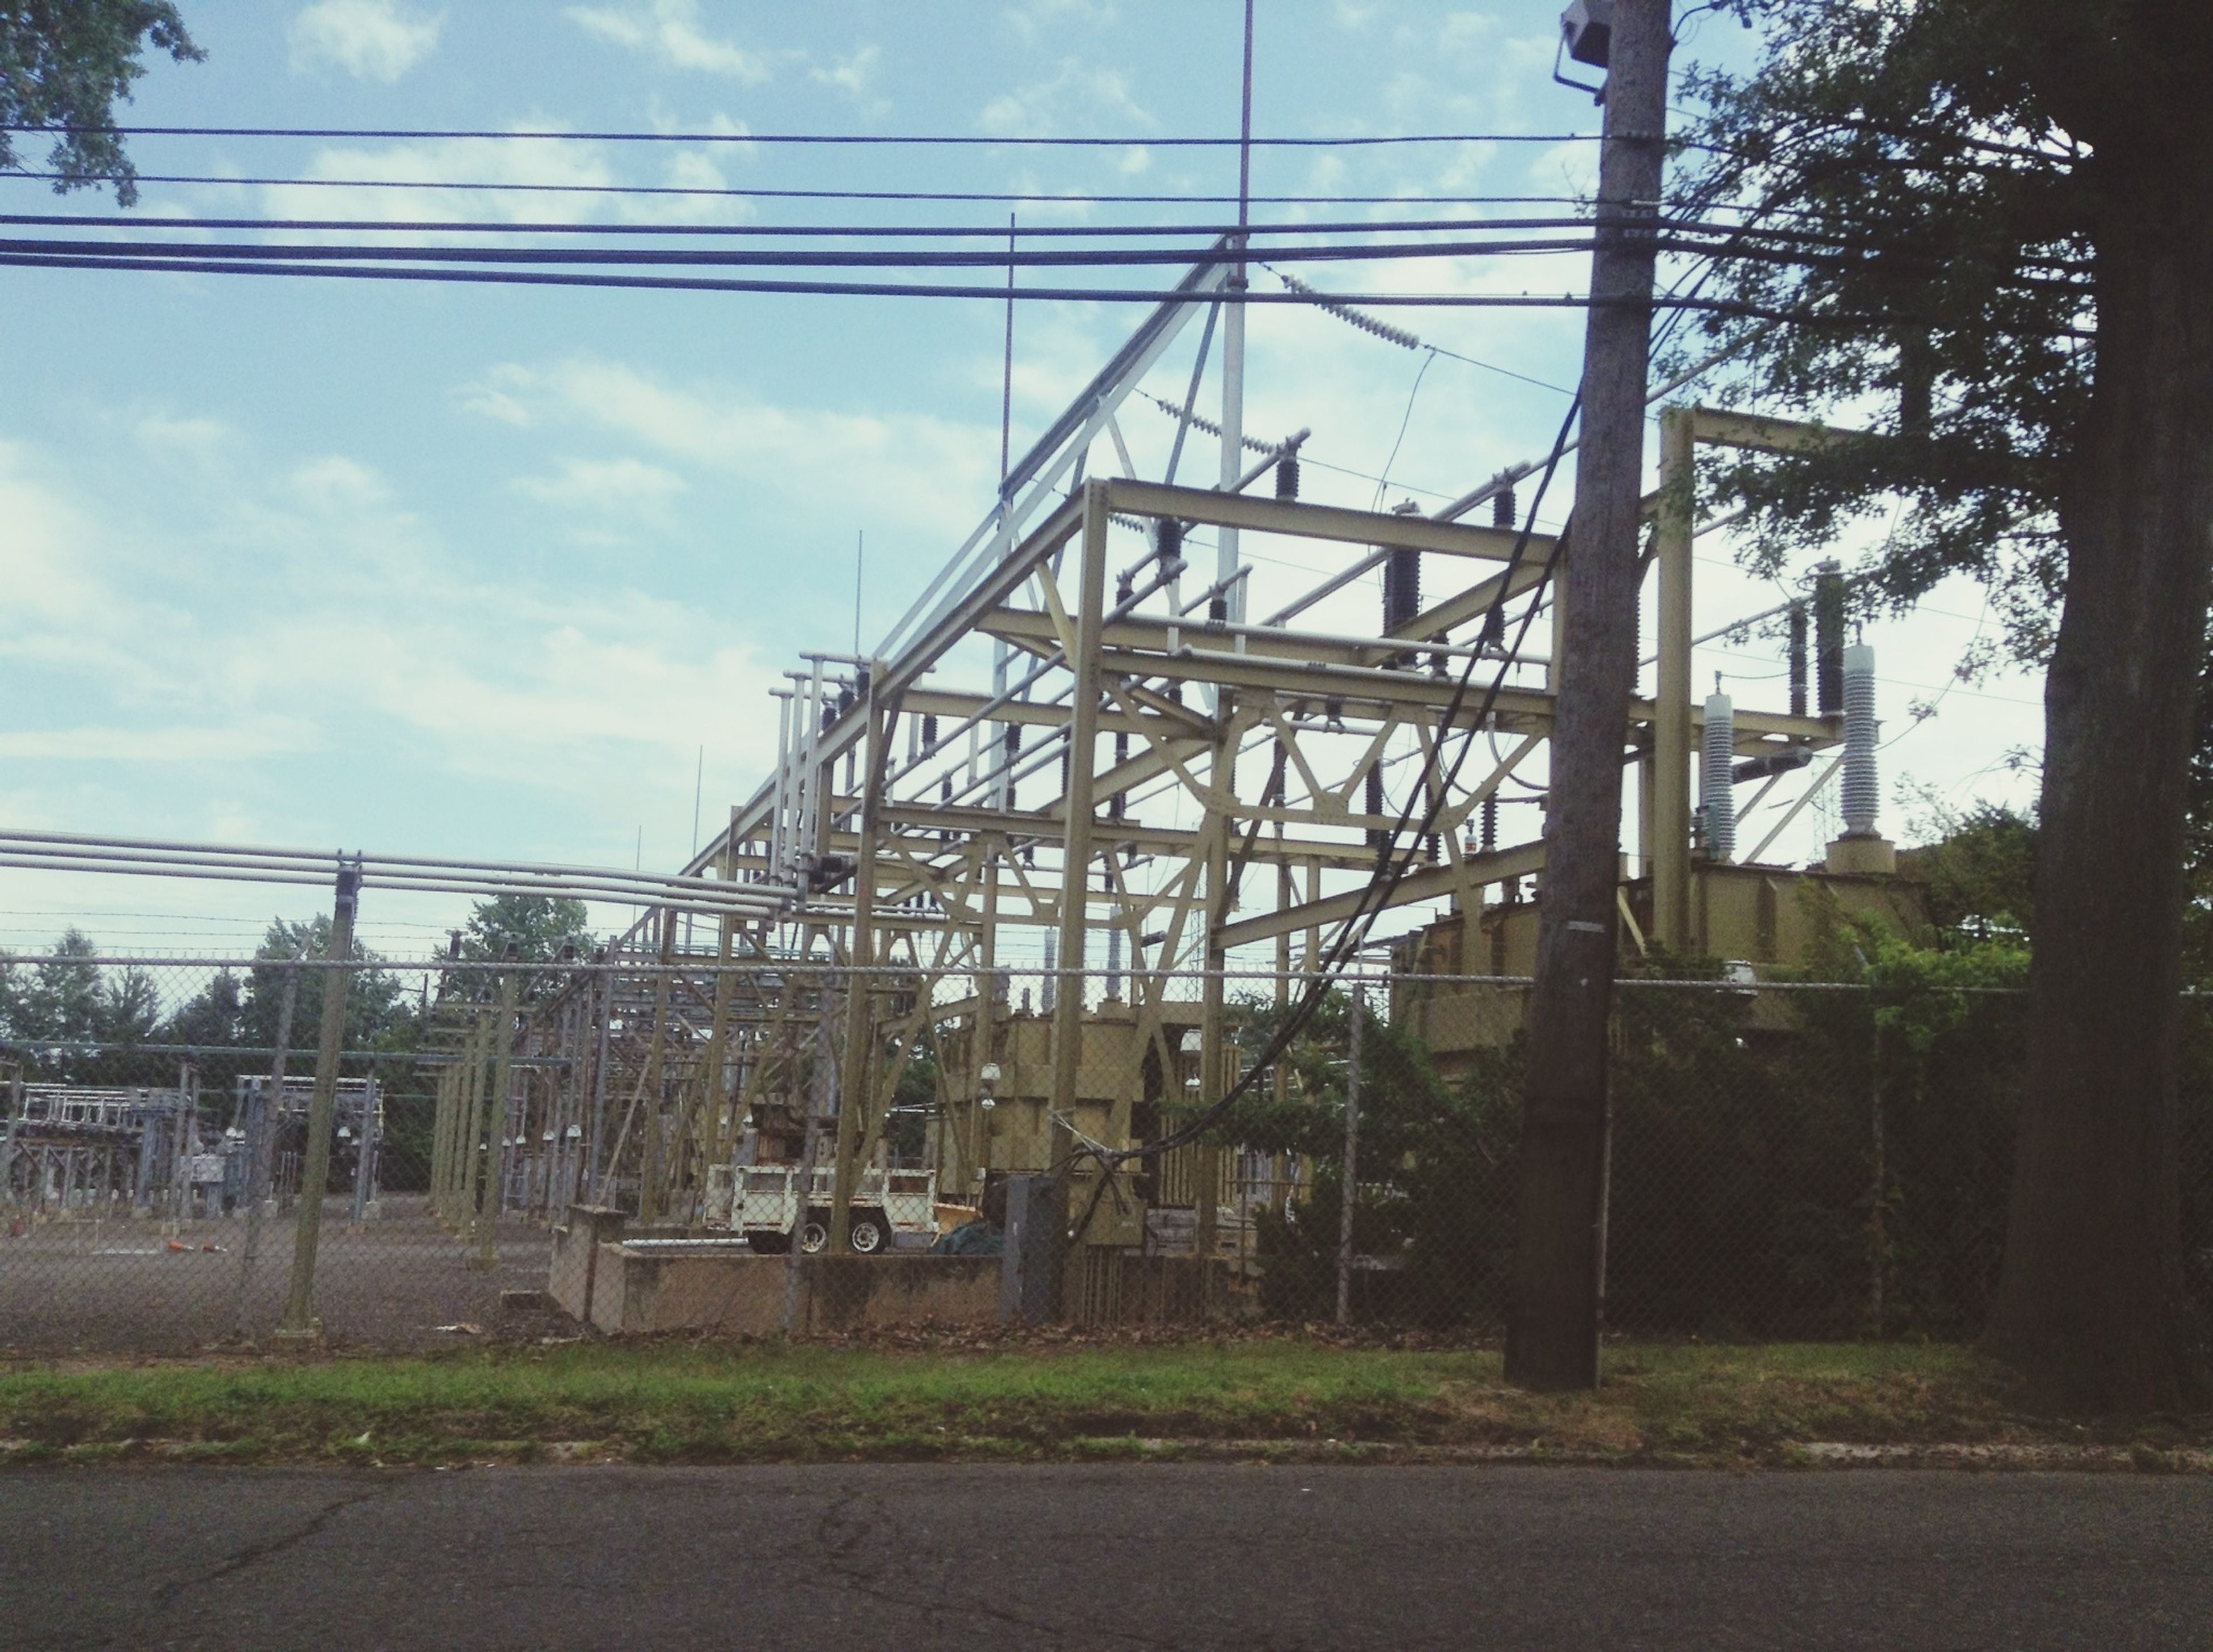 architecture, built structure, building exterior, power line, sky, electricity pylon, power supply, cable, electricity, railroad track, connection, cloud - sky, cloud, day, fuel and power generation, no people, rail transportation, house, low angle view, outdoors